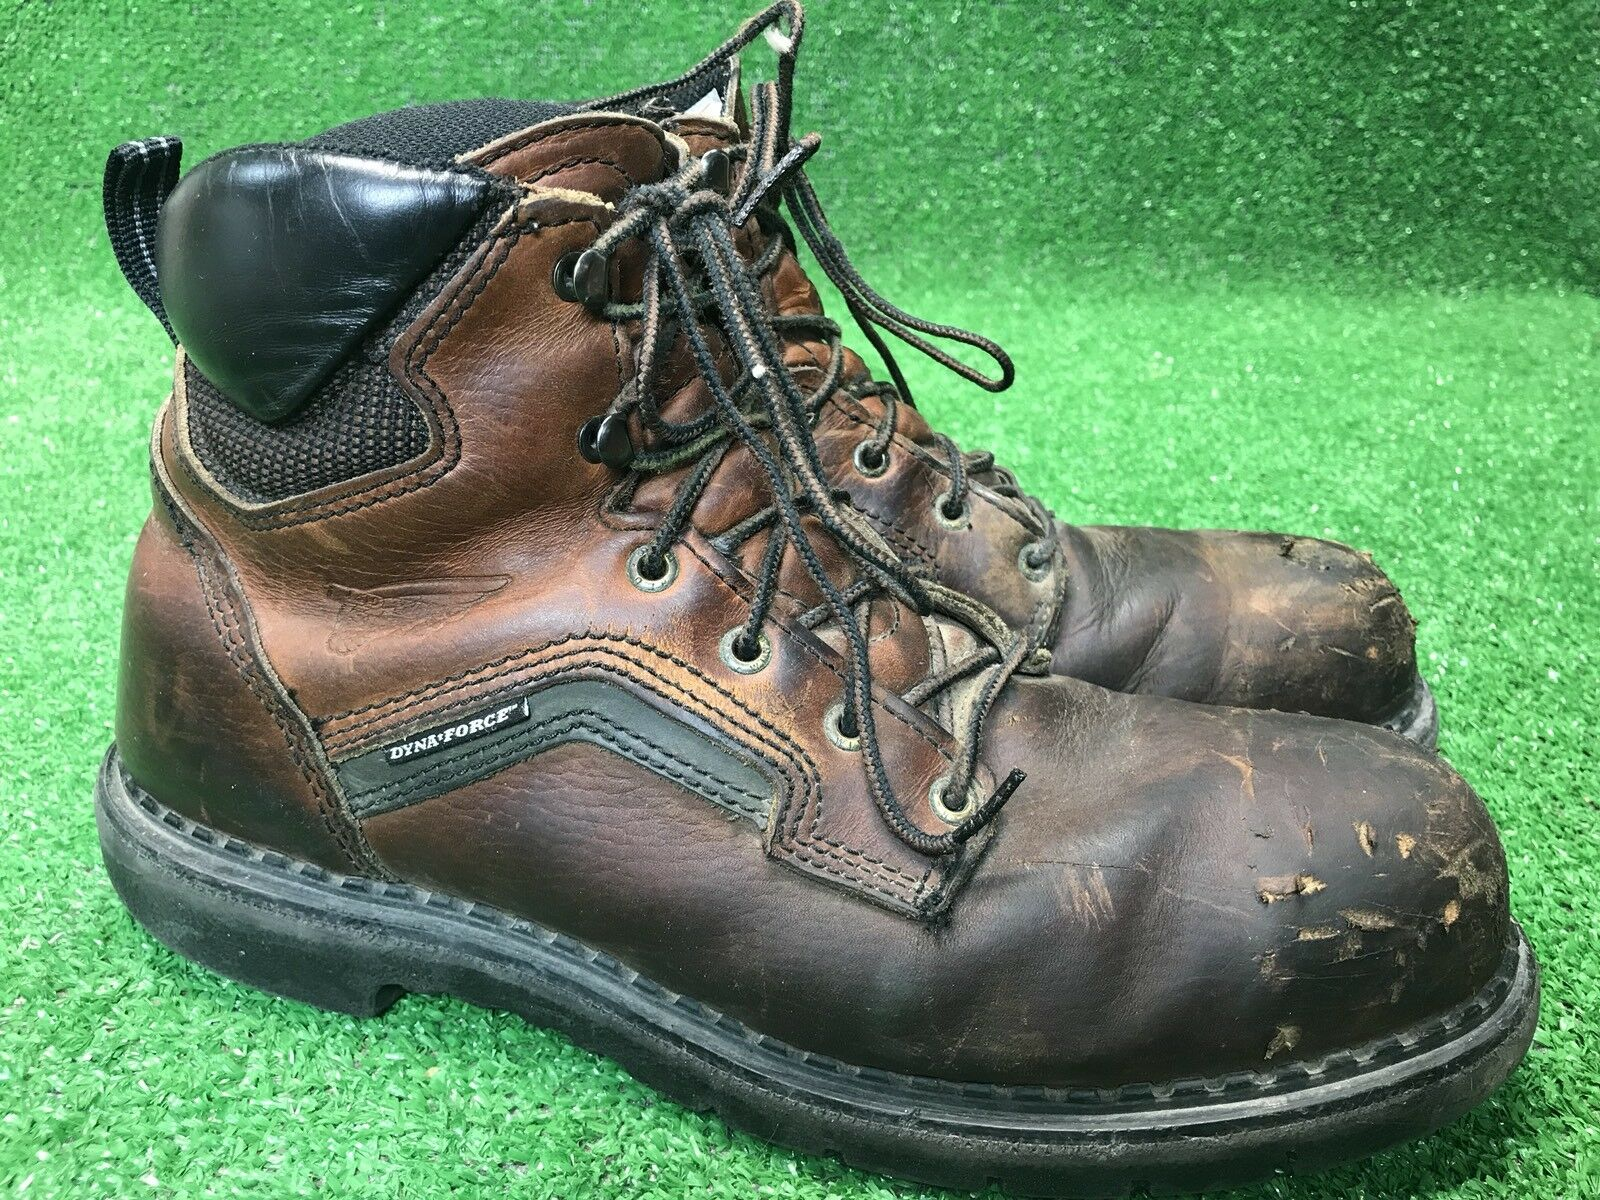 Red Wing Men's 2226 Brown Leather Work Boots Size 12 D Made In USA Steel Toe